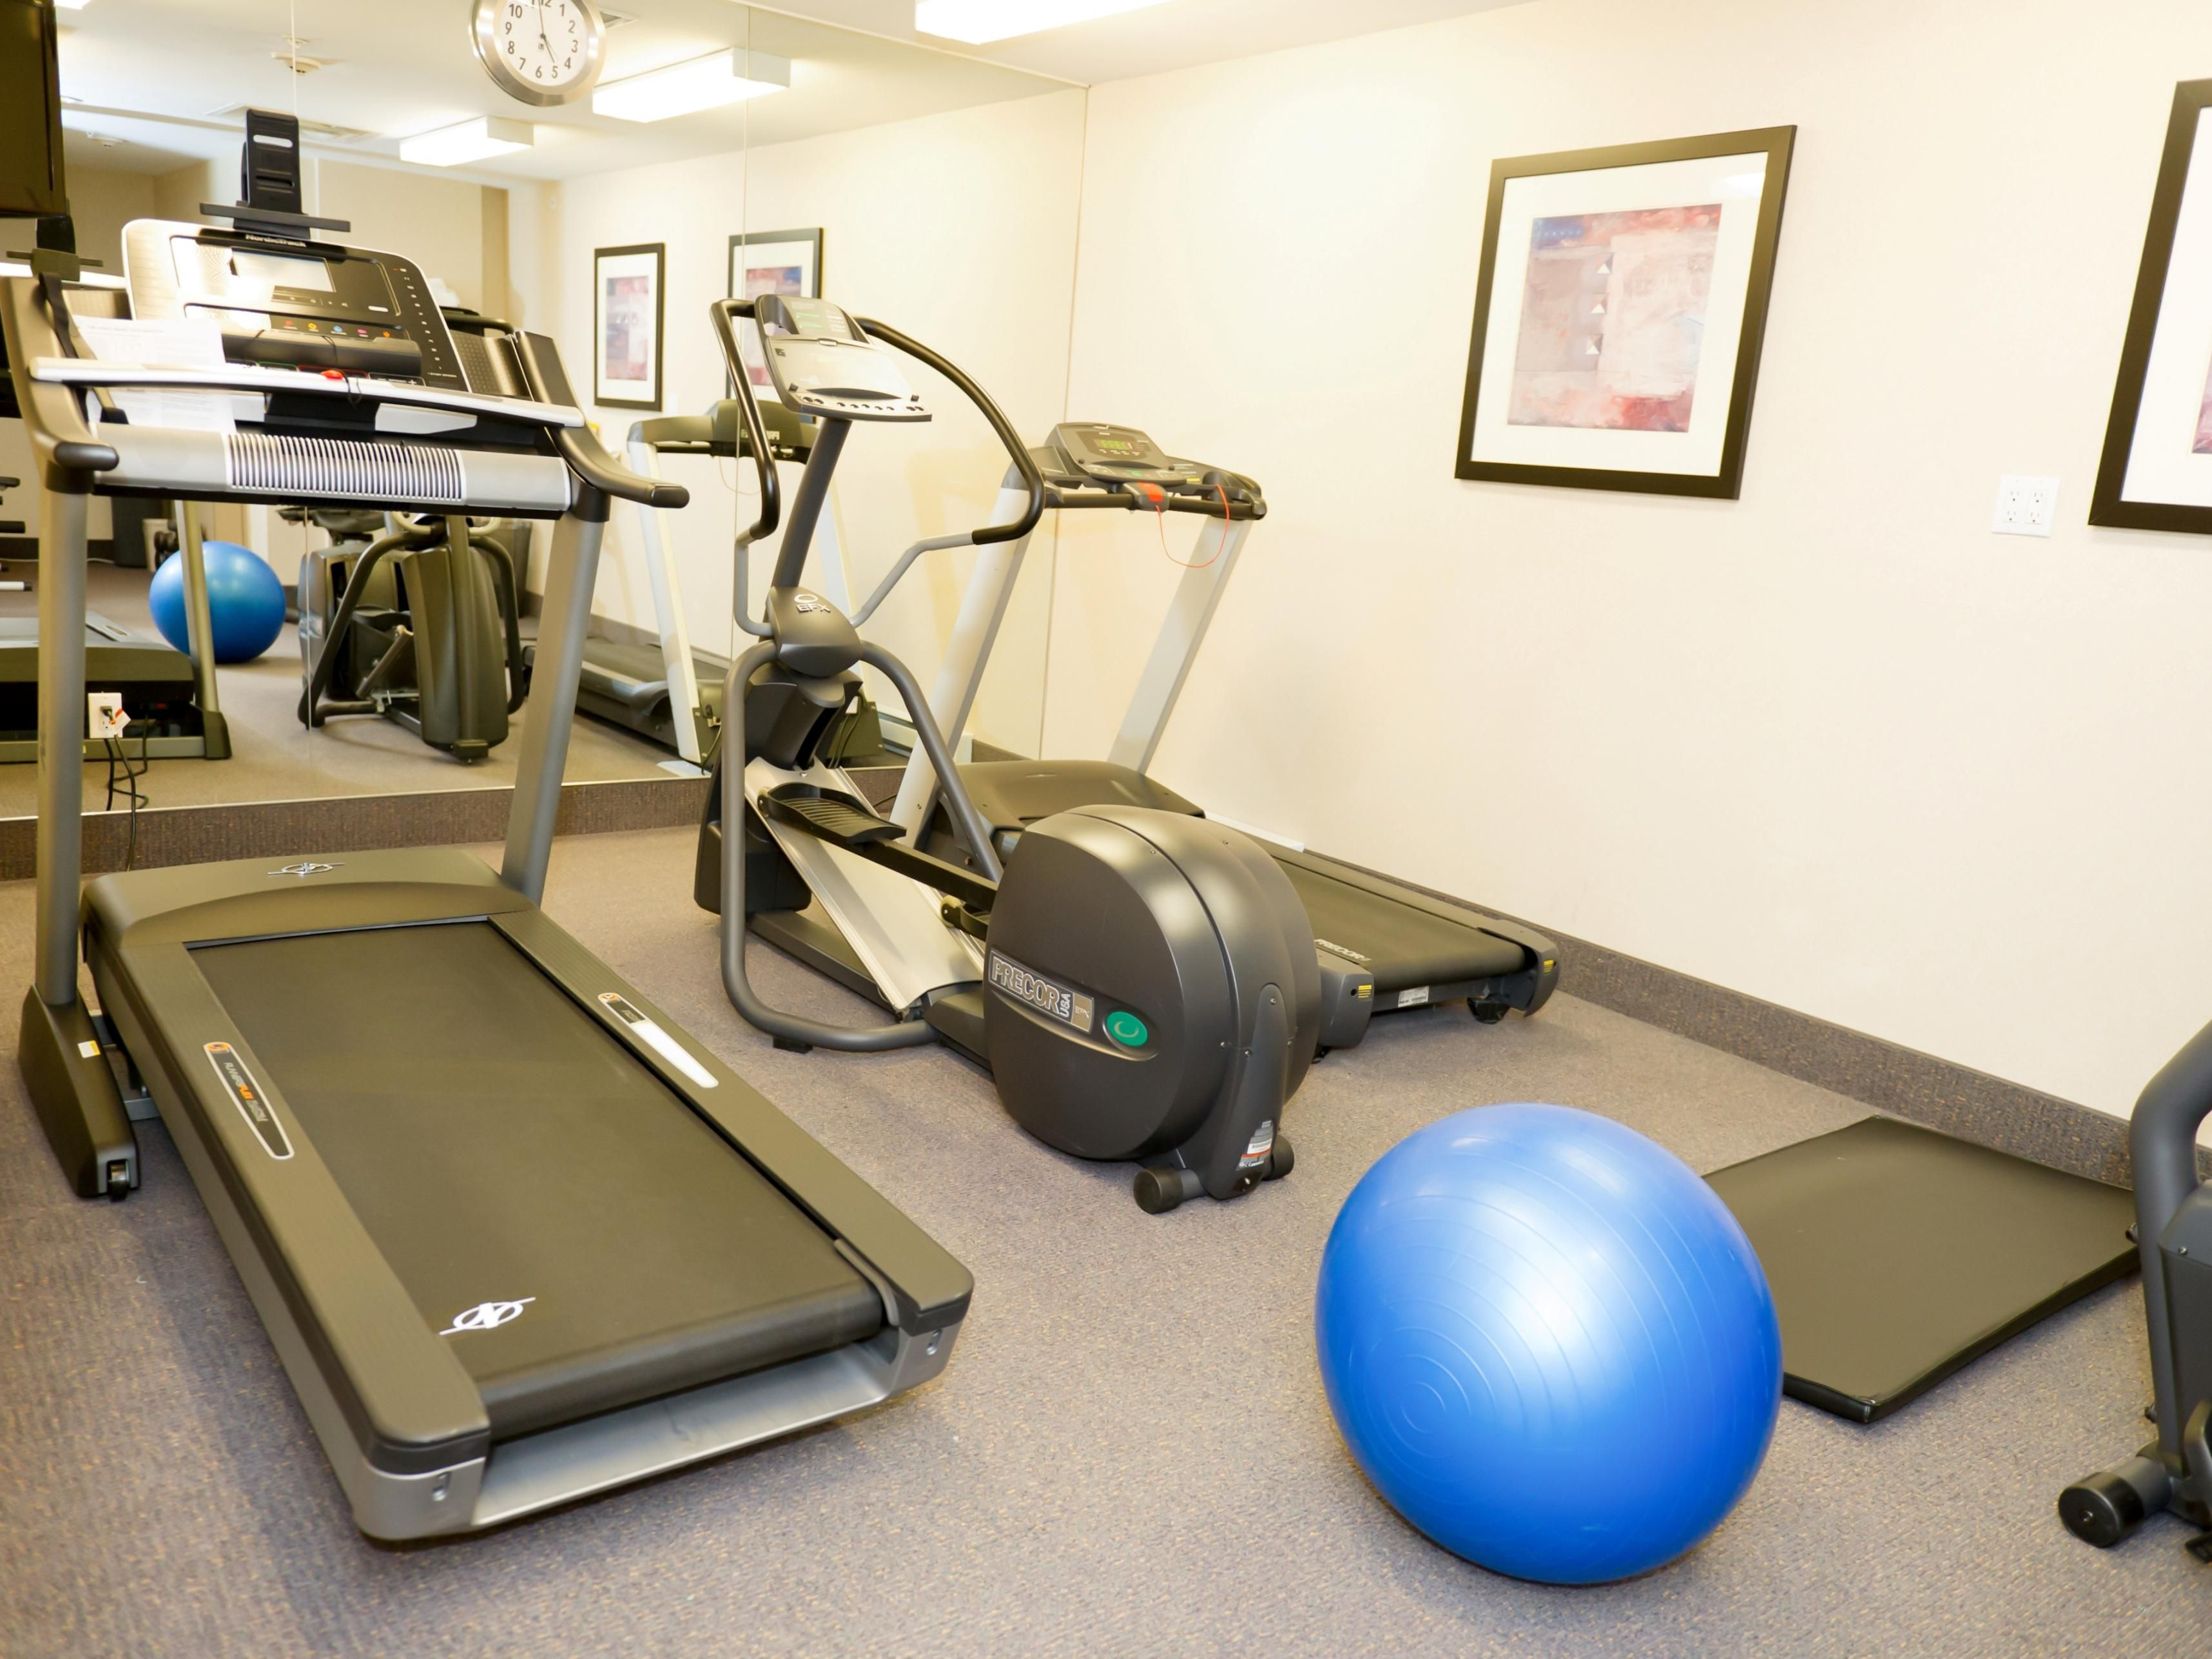 Holiday Inn Express & Suites 24 hour Fitness Center